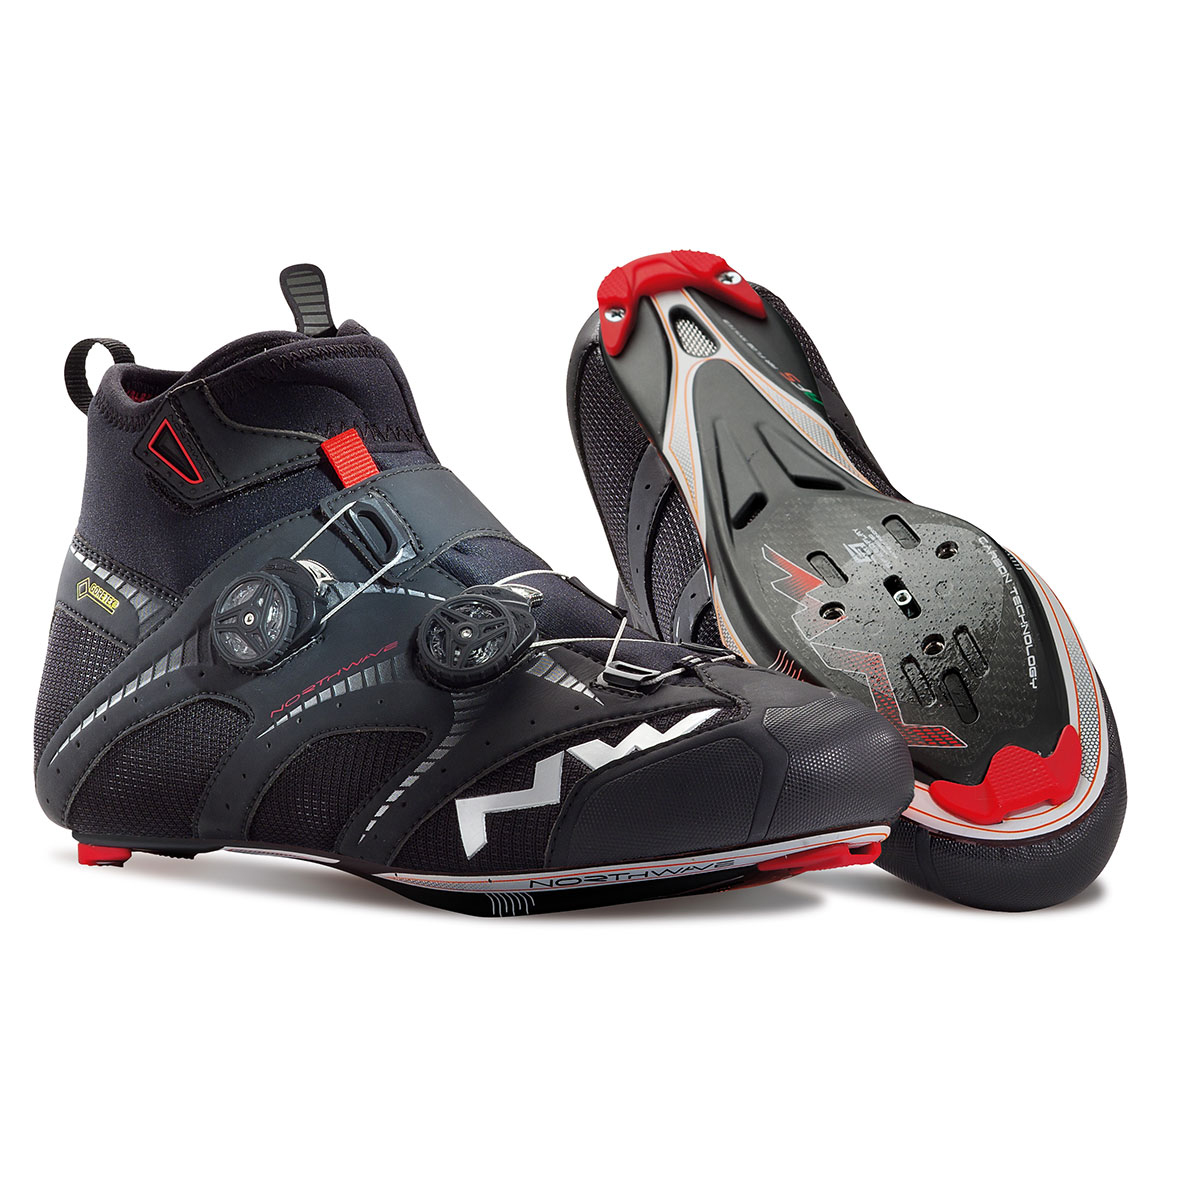 15995_northwave_extreme_winter_gtx_road_cycling_boots